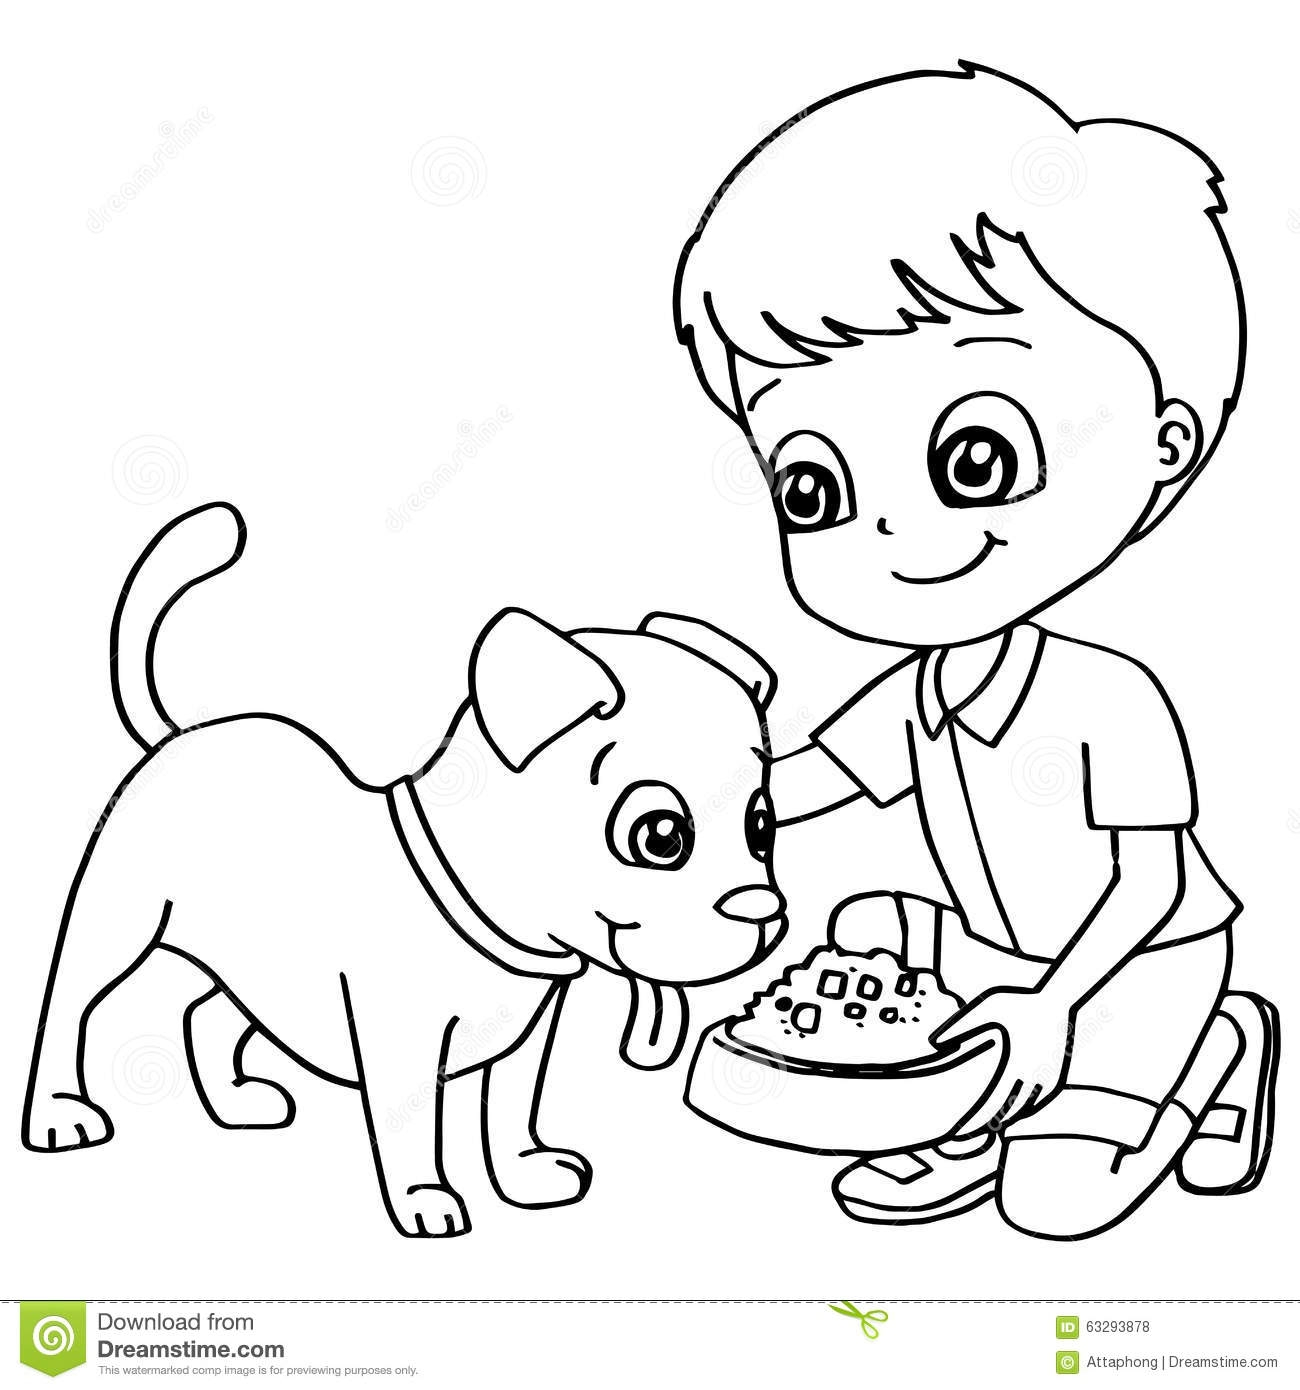 Clipart feed the dog. Animal clipartfox coloring book